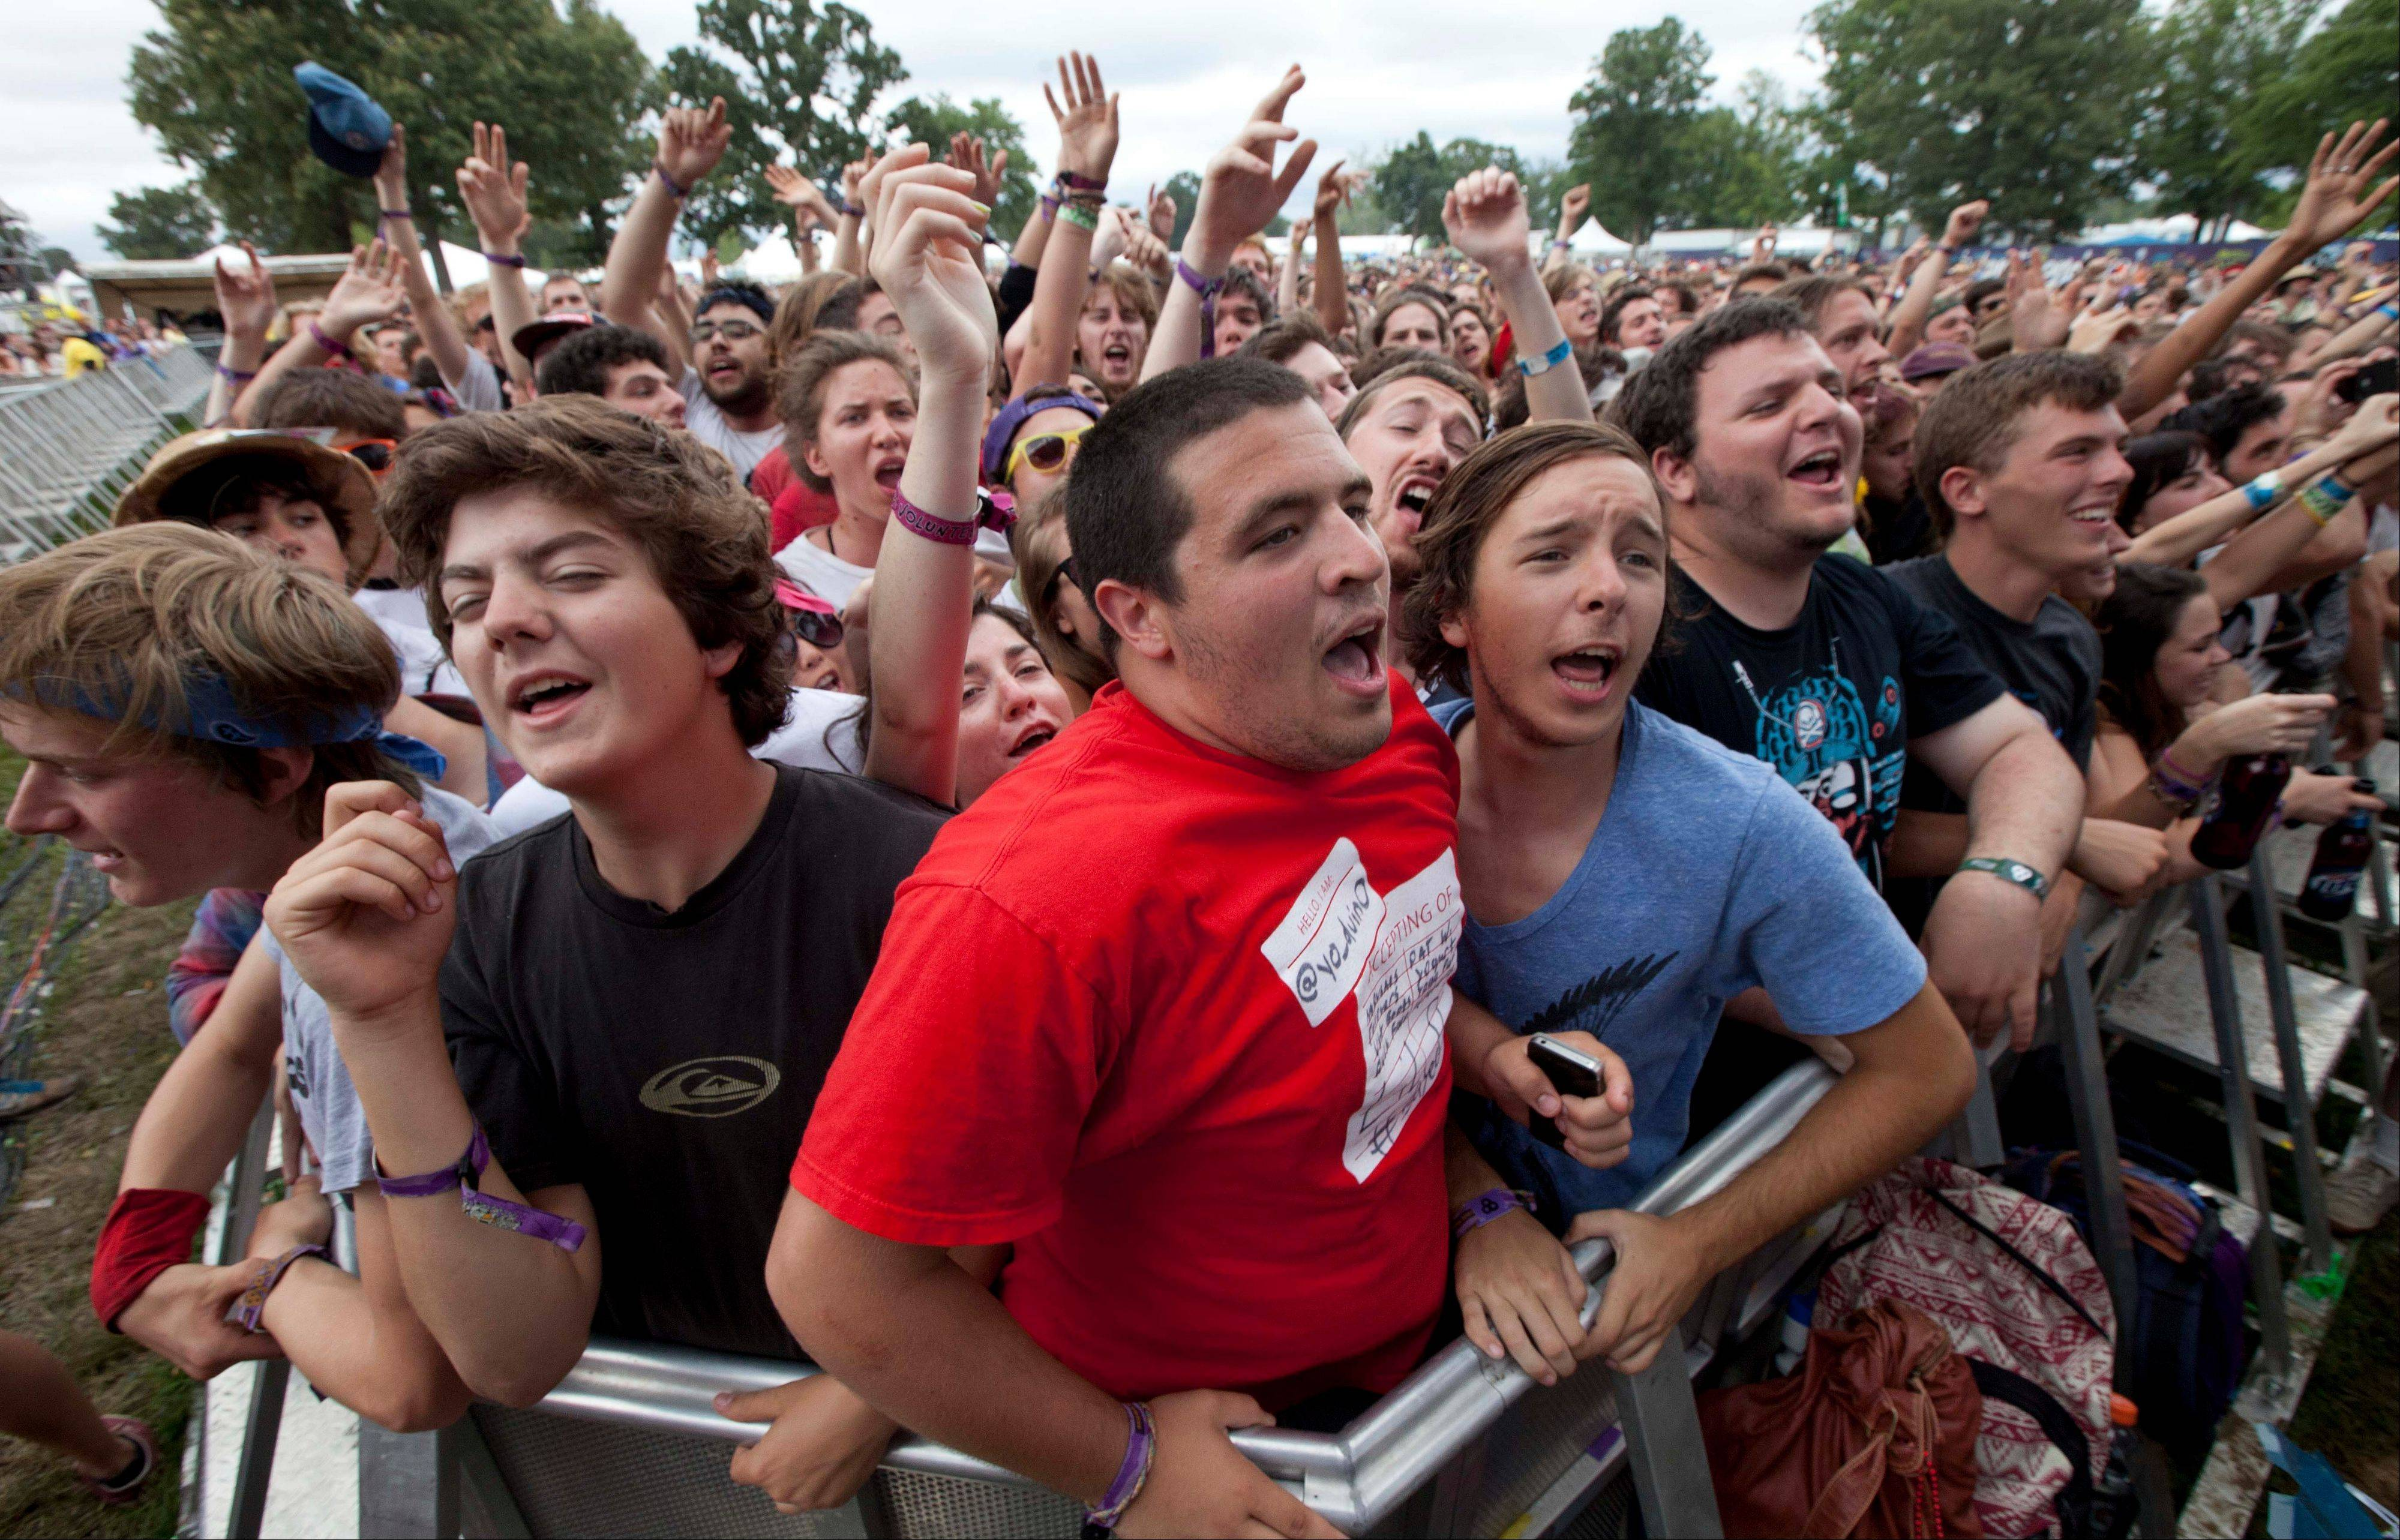 Fans enjoy a performance by The Black Lips at the Bonnaroo Music and Arts Festival in Manchester, Tenn. Despite heat, humidity, crowds and costs, music festivals are more popular than ever.